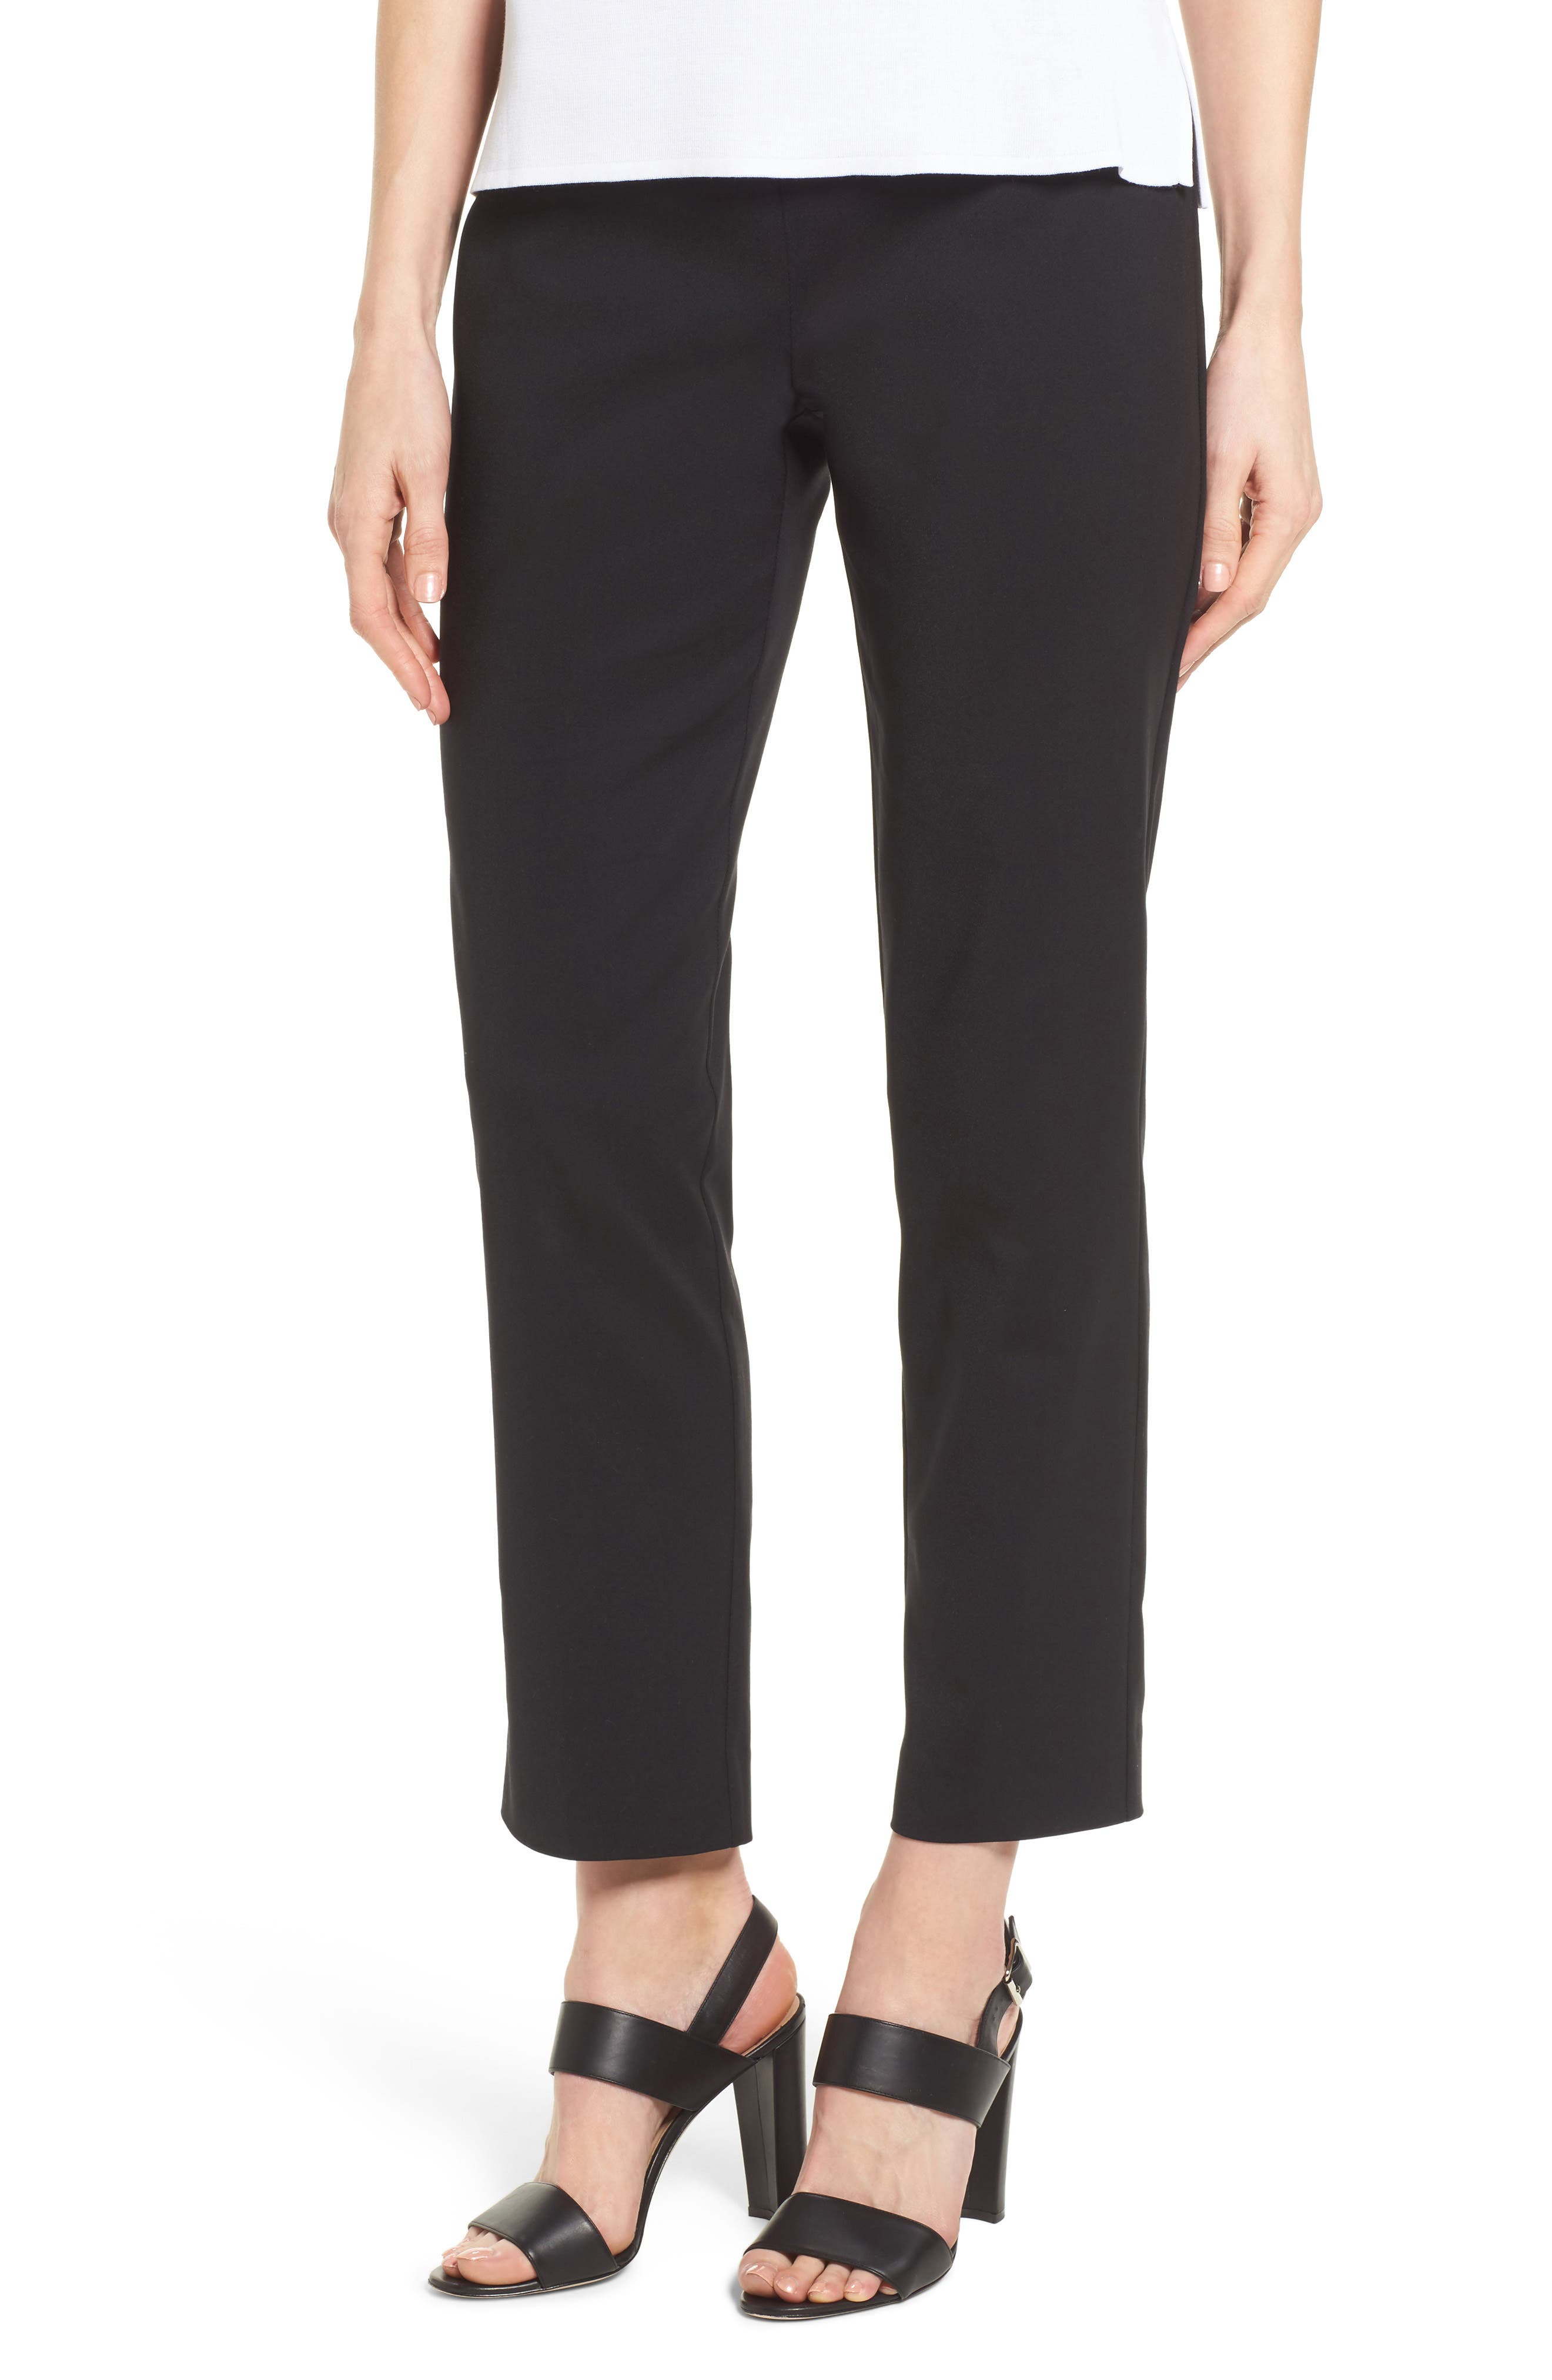 Ming Want Pull-On Ankle Pants,                         Main,                         color, Black